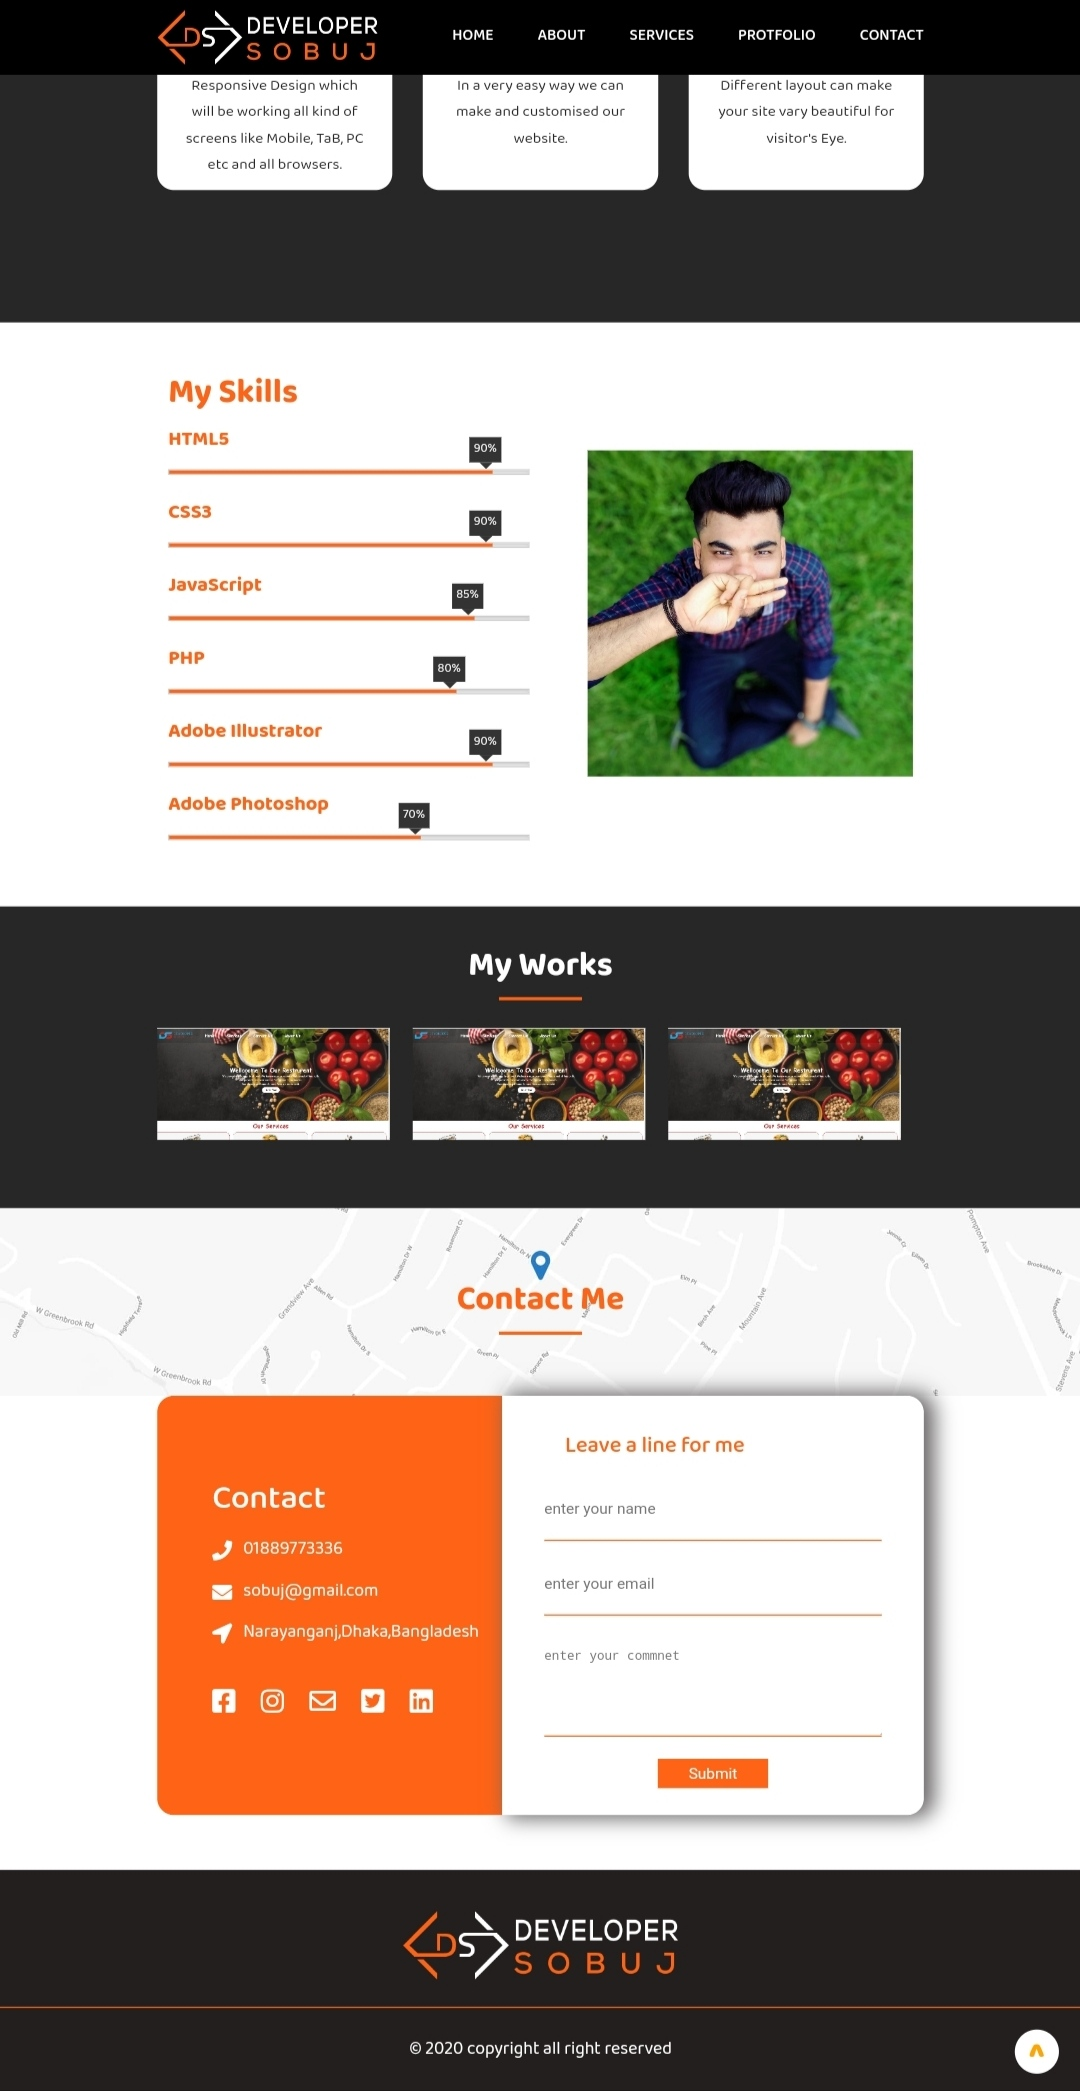 I will design fully responsive website form psd to html,xd to html or any king of images to html